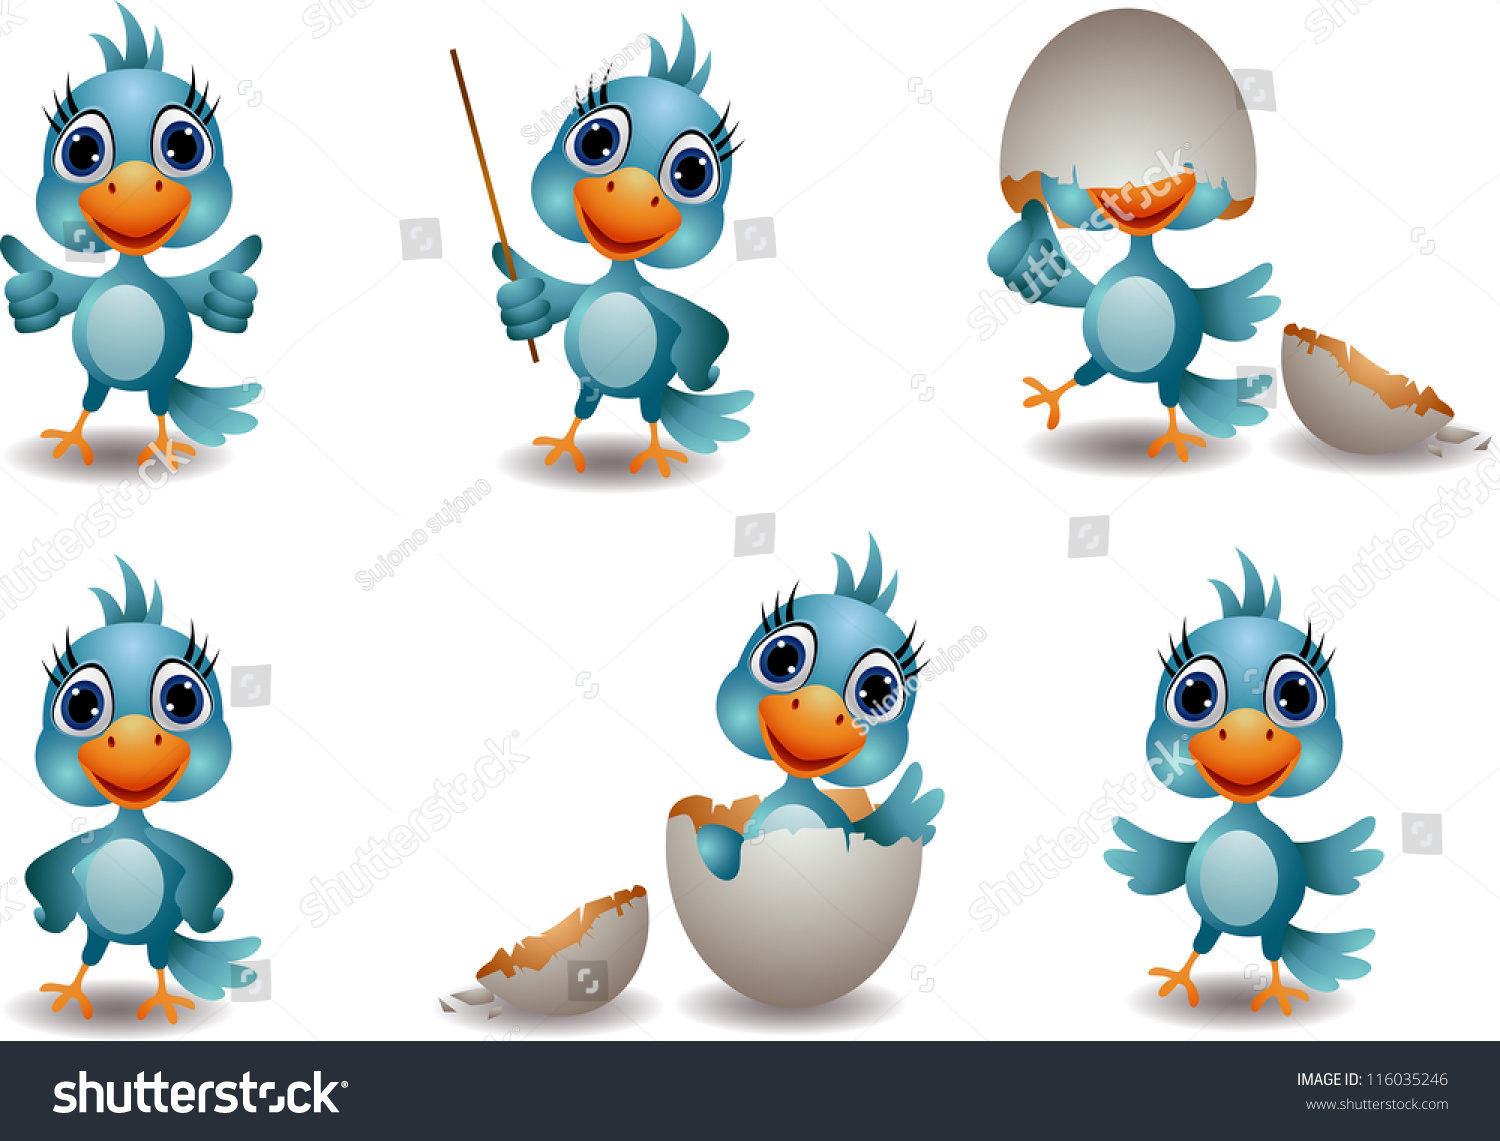 Cute baby cartoon birds - photo#9